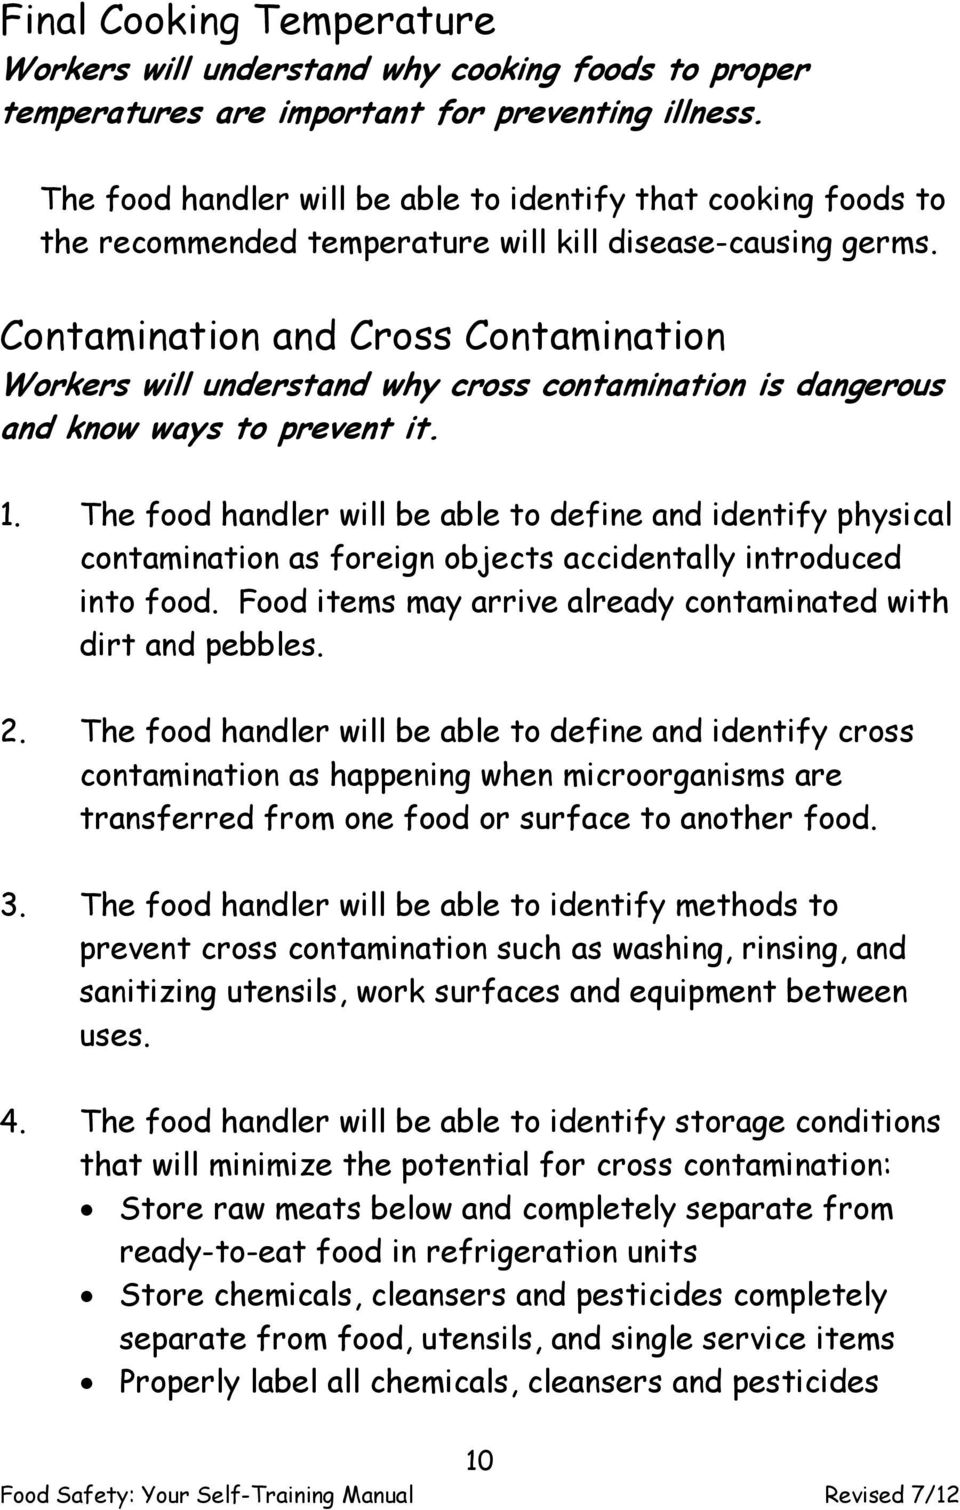 Contamination and Cross Contamination Workers will understand why cross  contamination is dangerous and know ways to